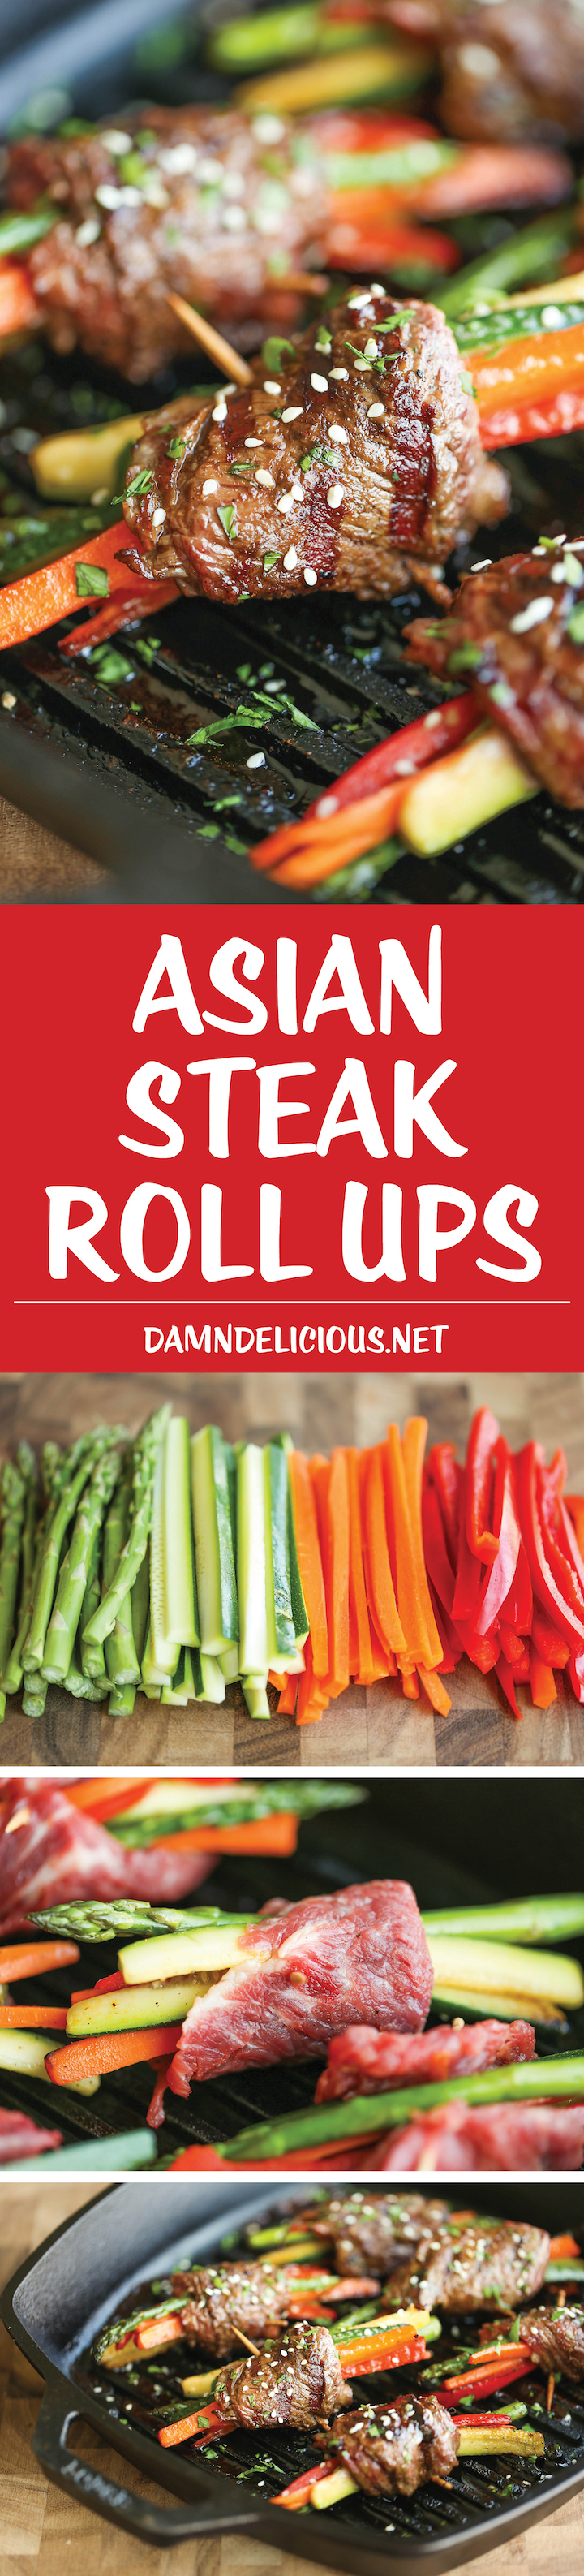 Asian Steak Roll Ups - Easy make-ahead roll ups with tons of veggies and the best Asian marinade loaded with so much flavor. Can be grilled or pan seared!